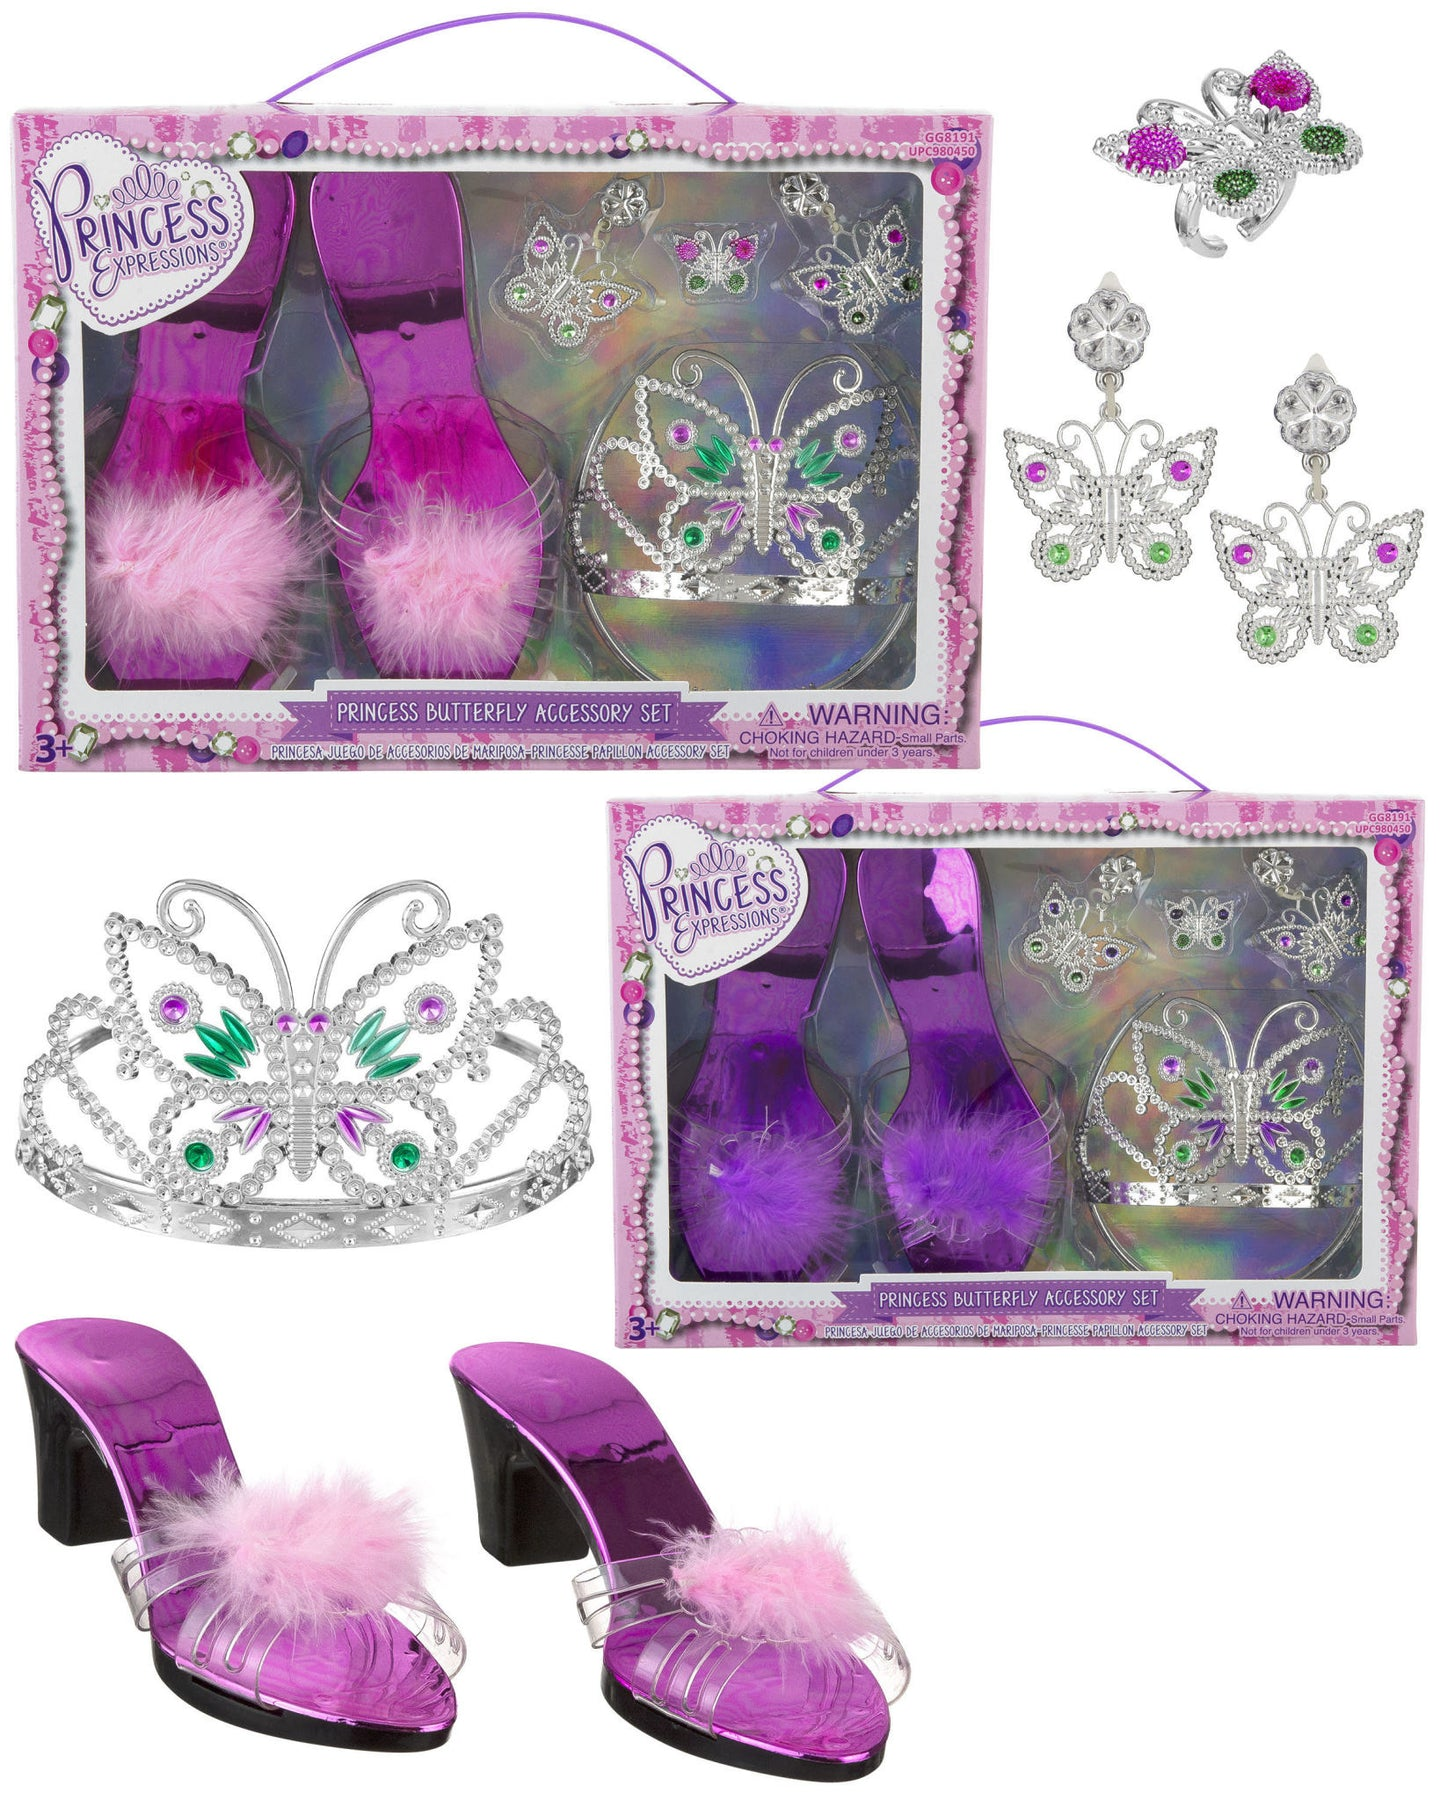 Princess Butterfly Accessory Set